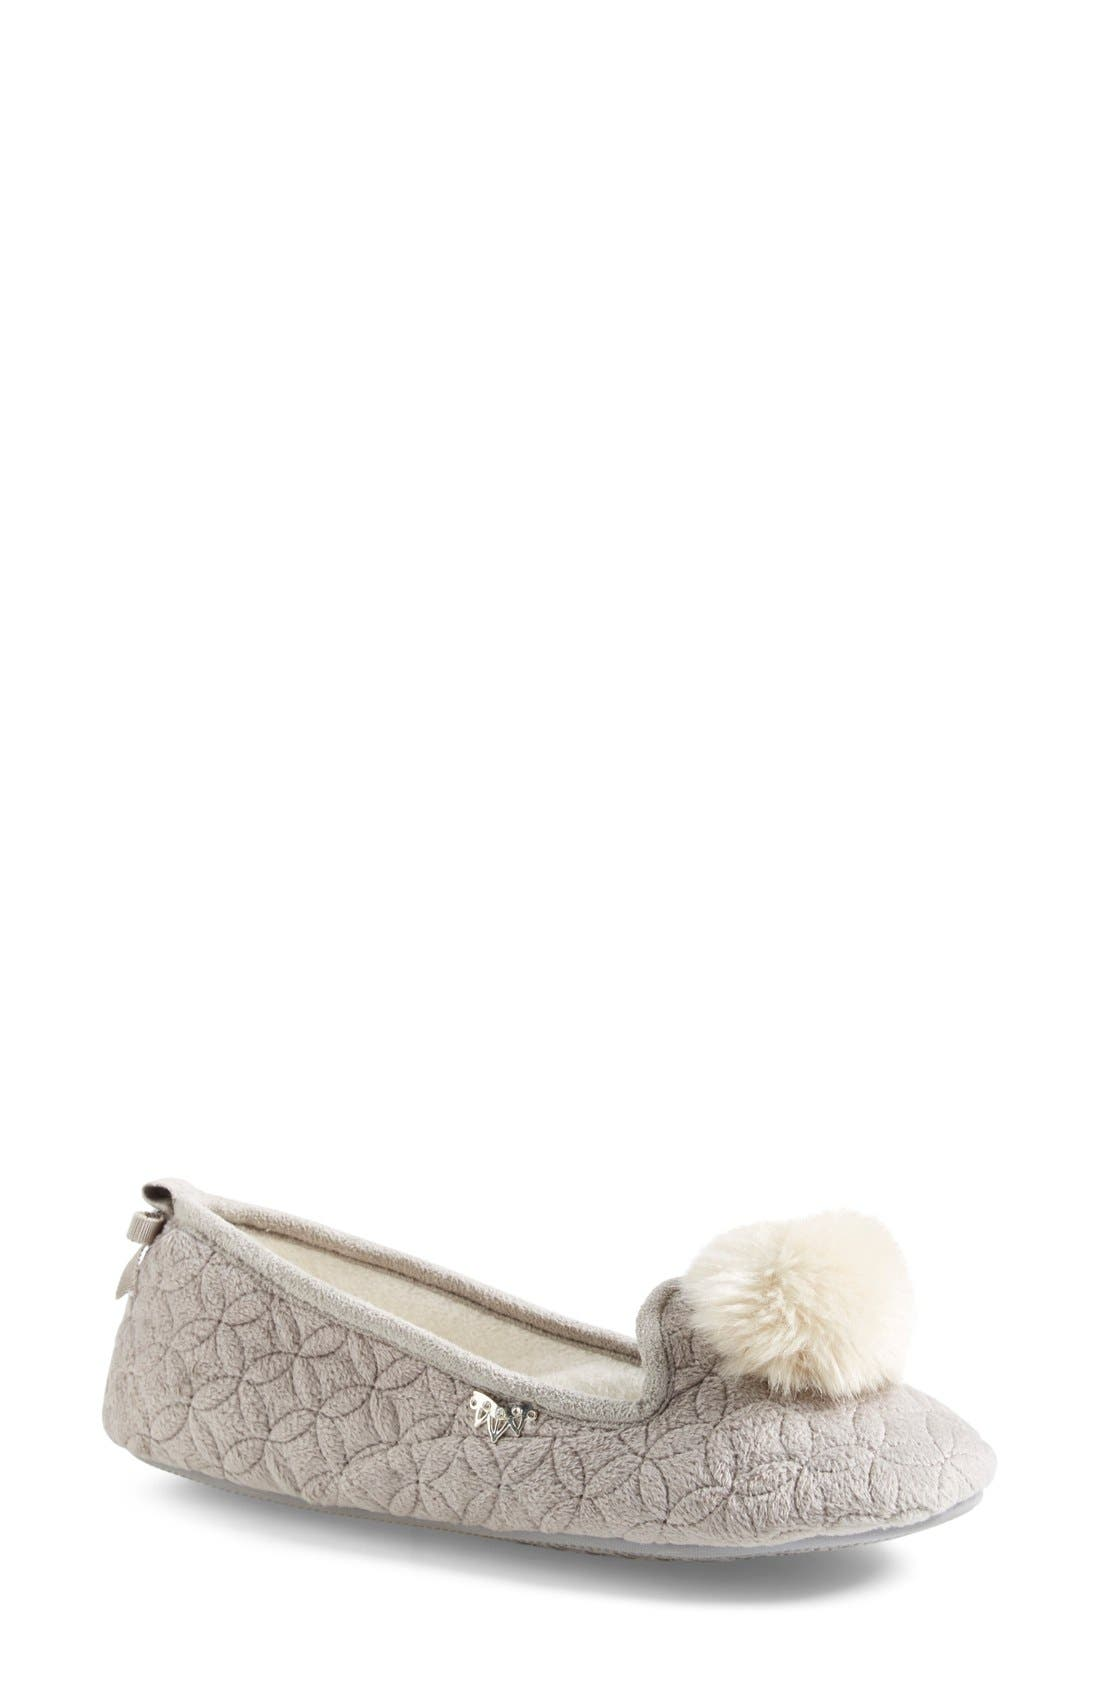 Main Image - Pretty You London 'Opera' Quilted Faux Fur Pompom Slipper